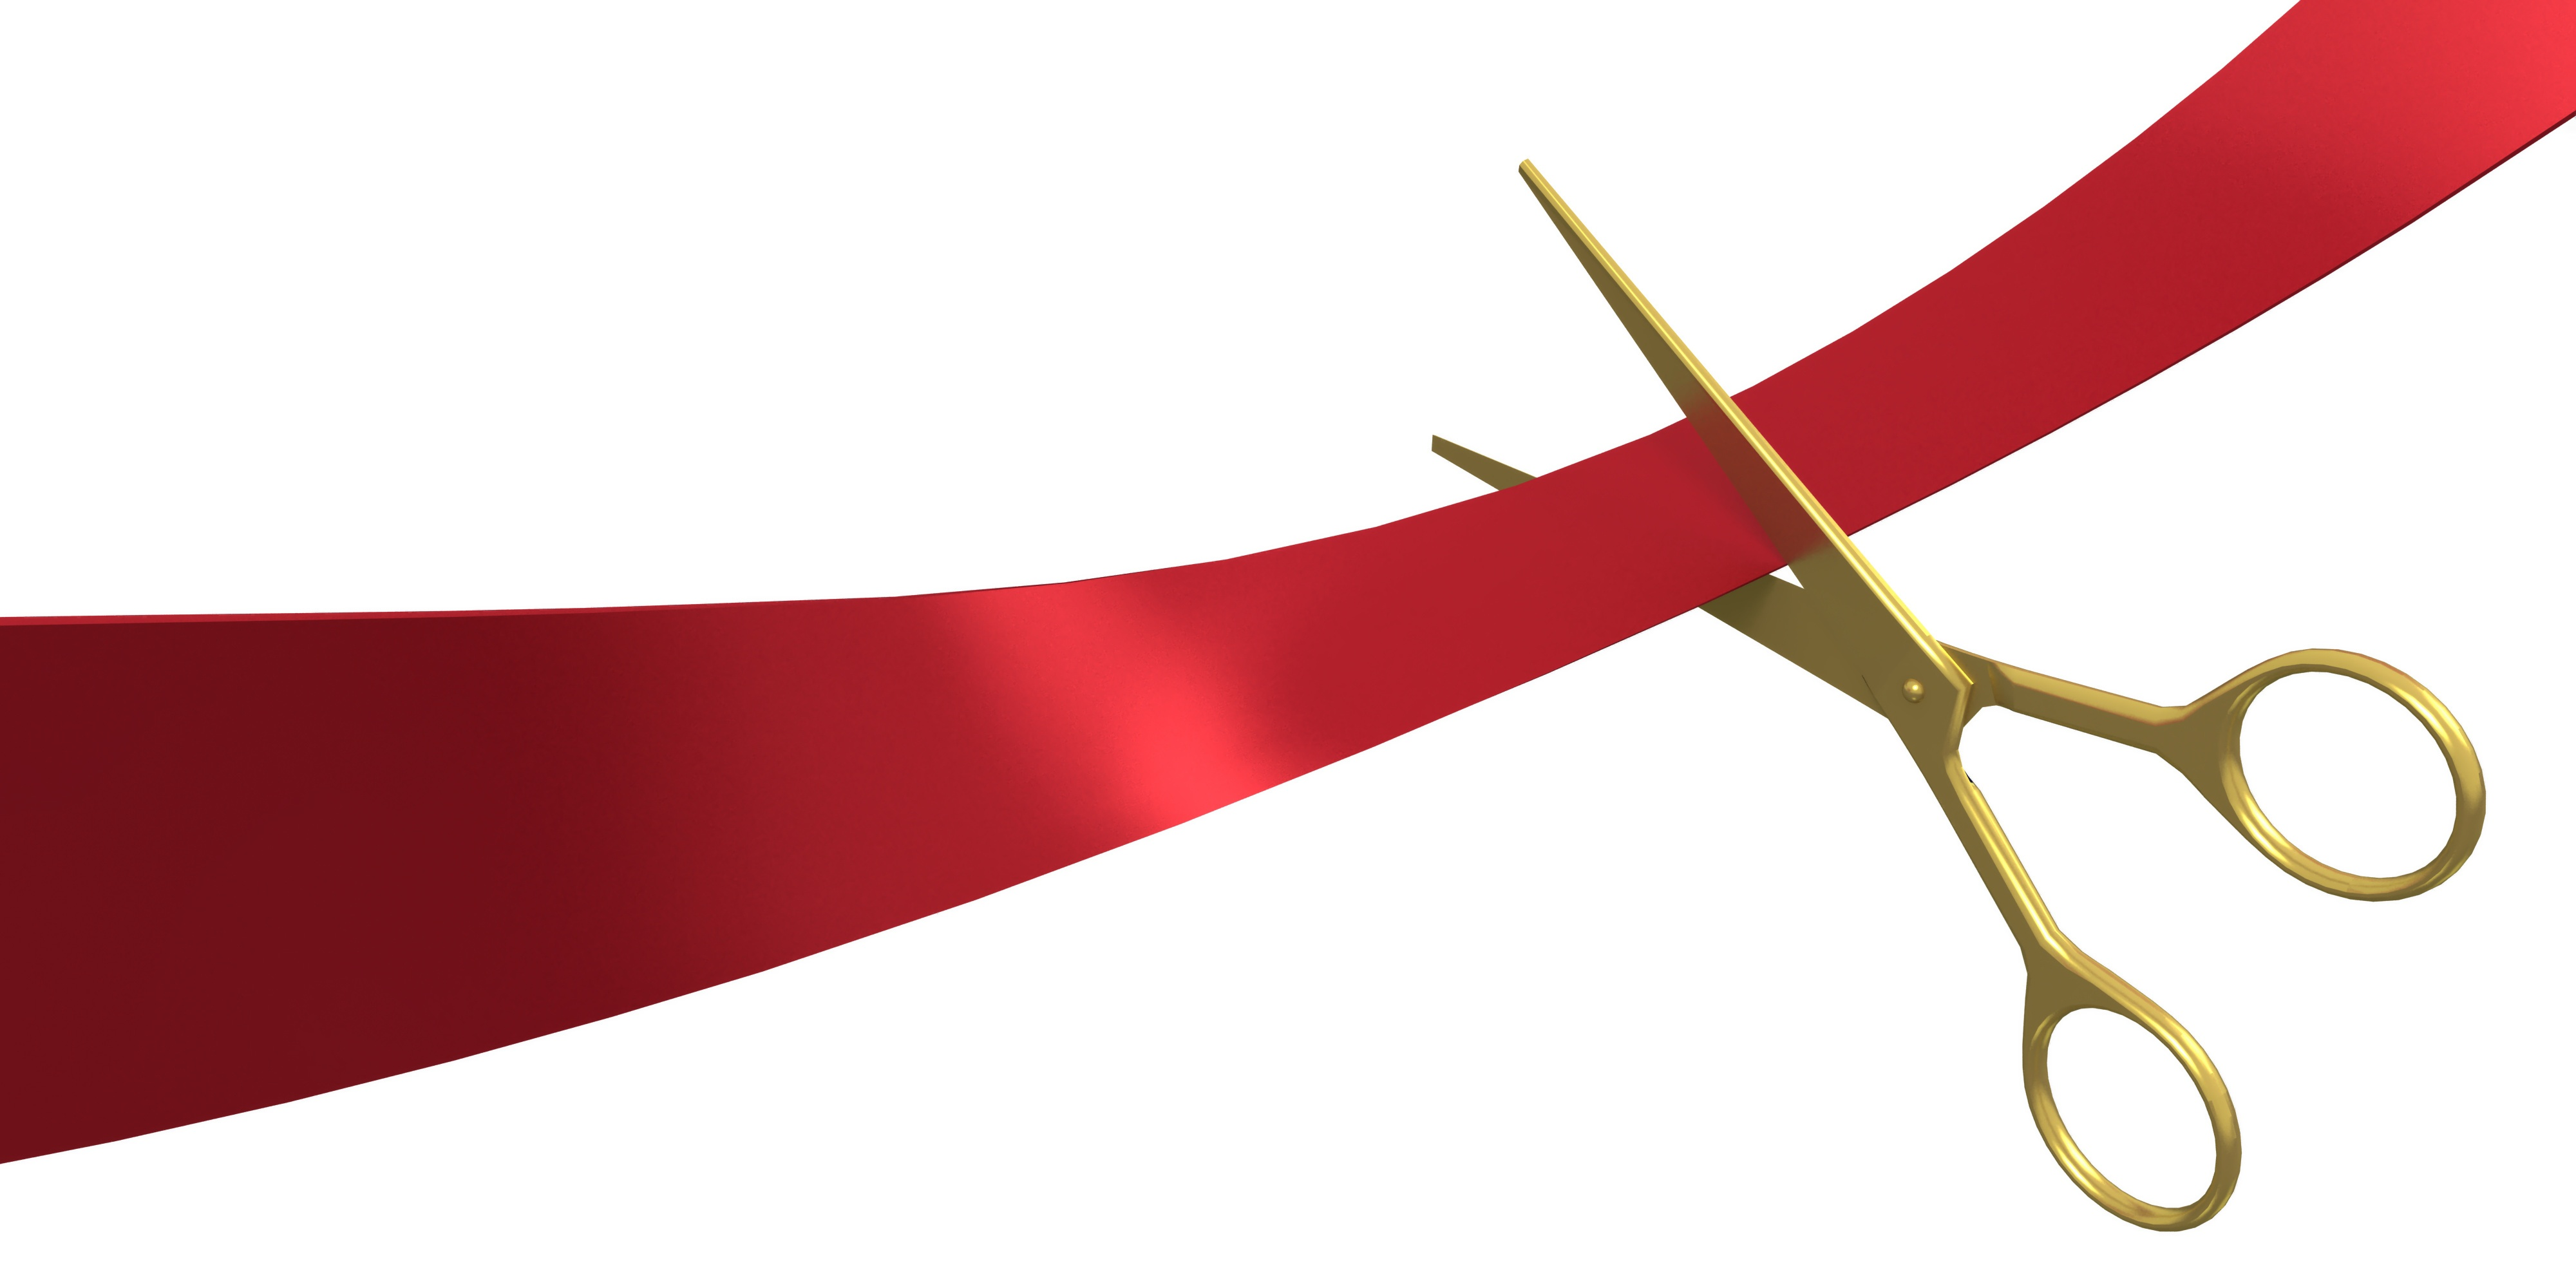 SymQuest to Award Five Grants at Upcoming Plattsburgh, NY Ribbon Cutting Ceremony